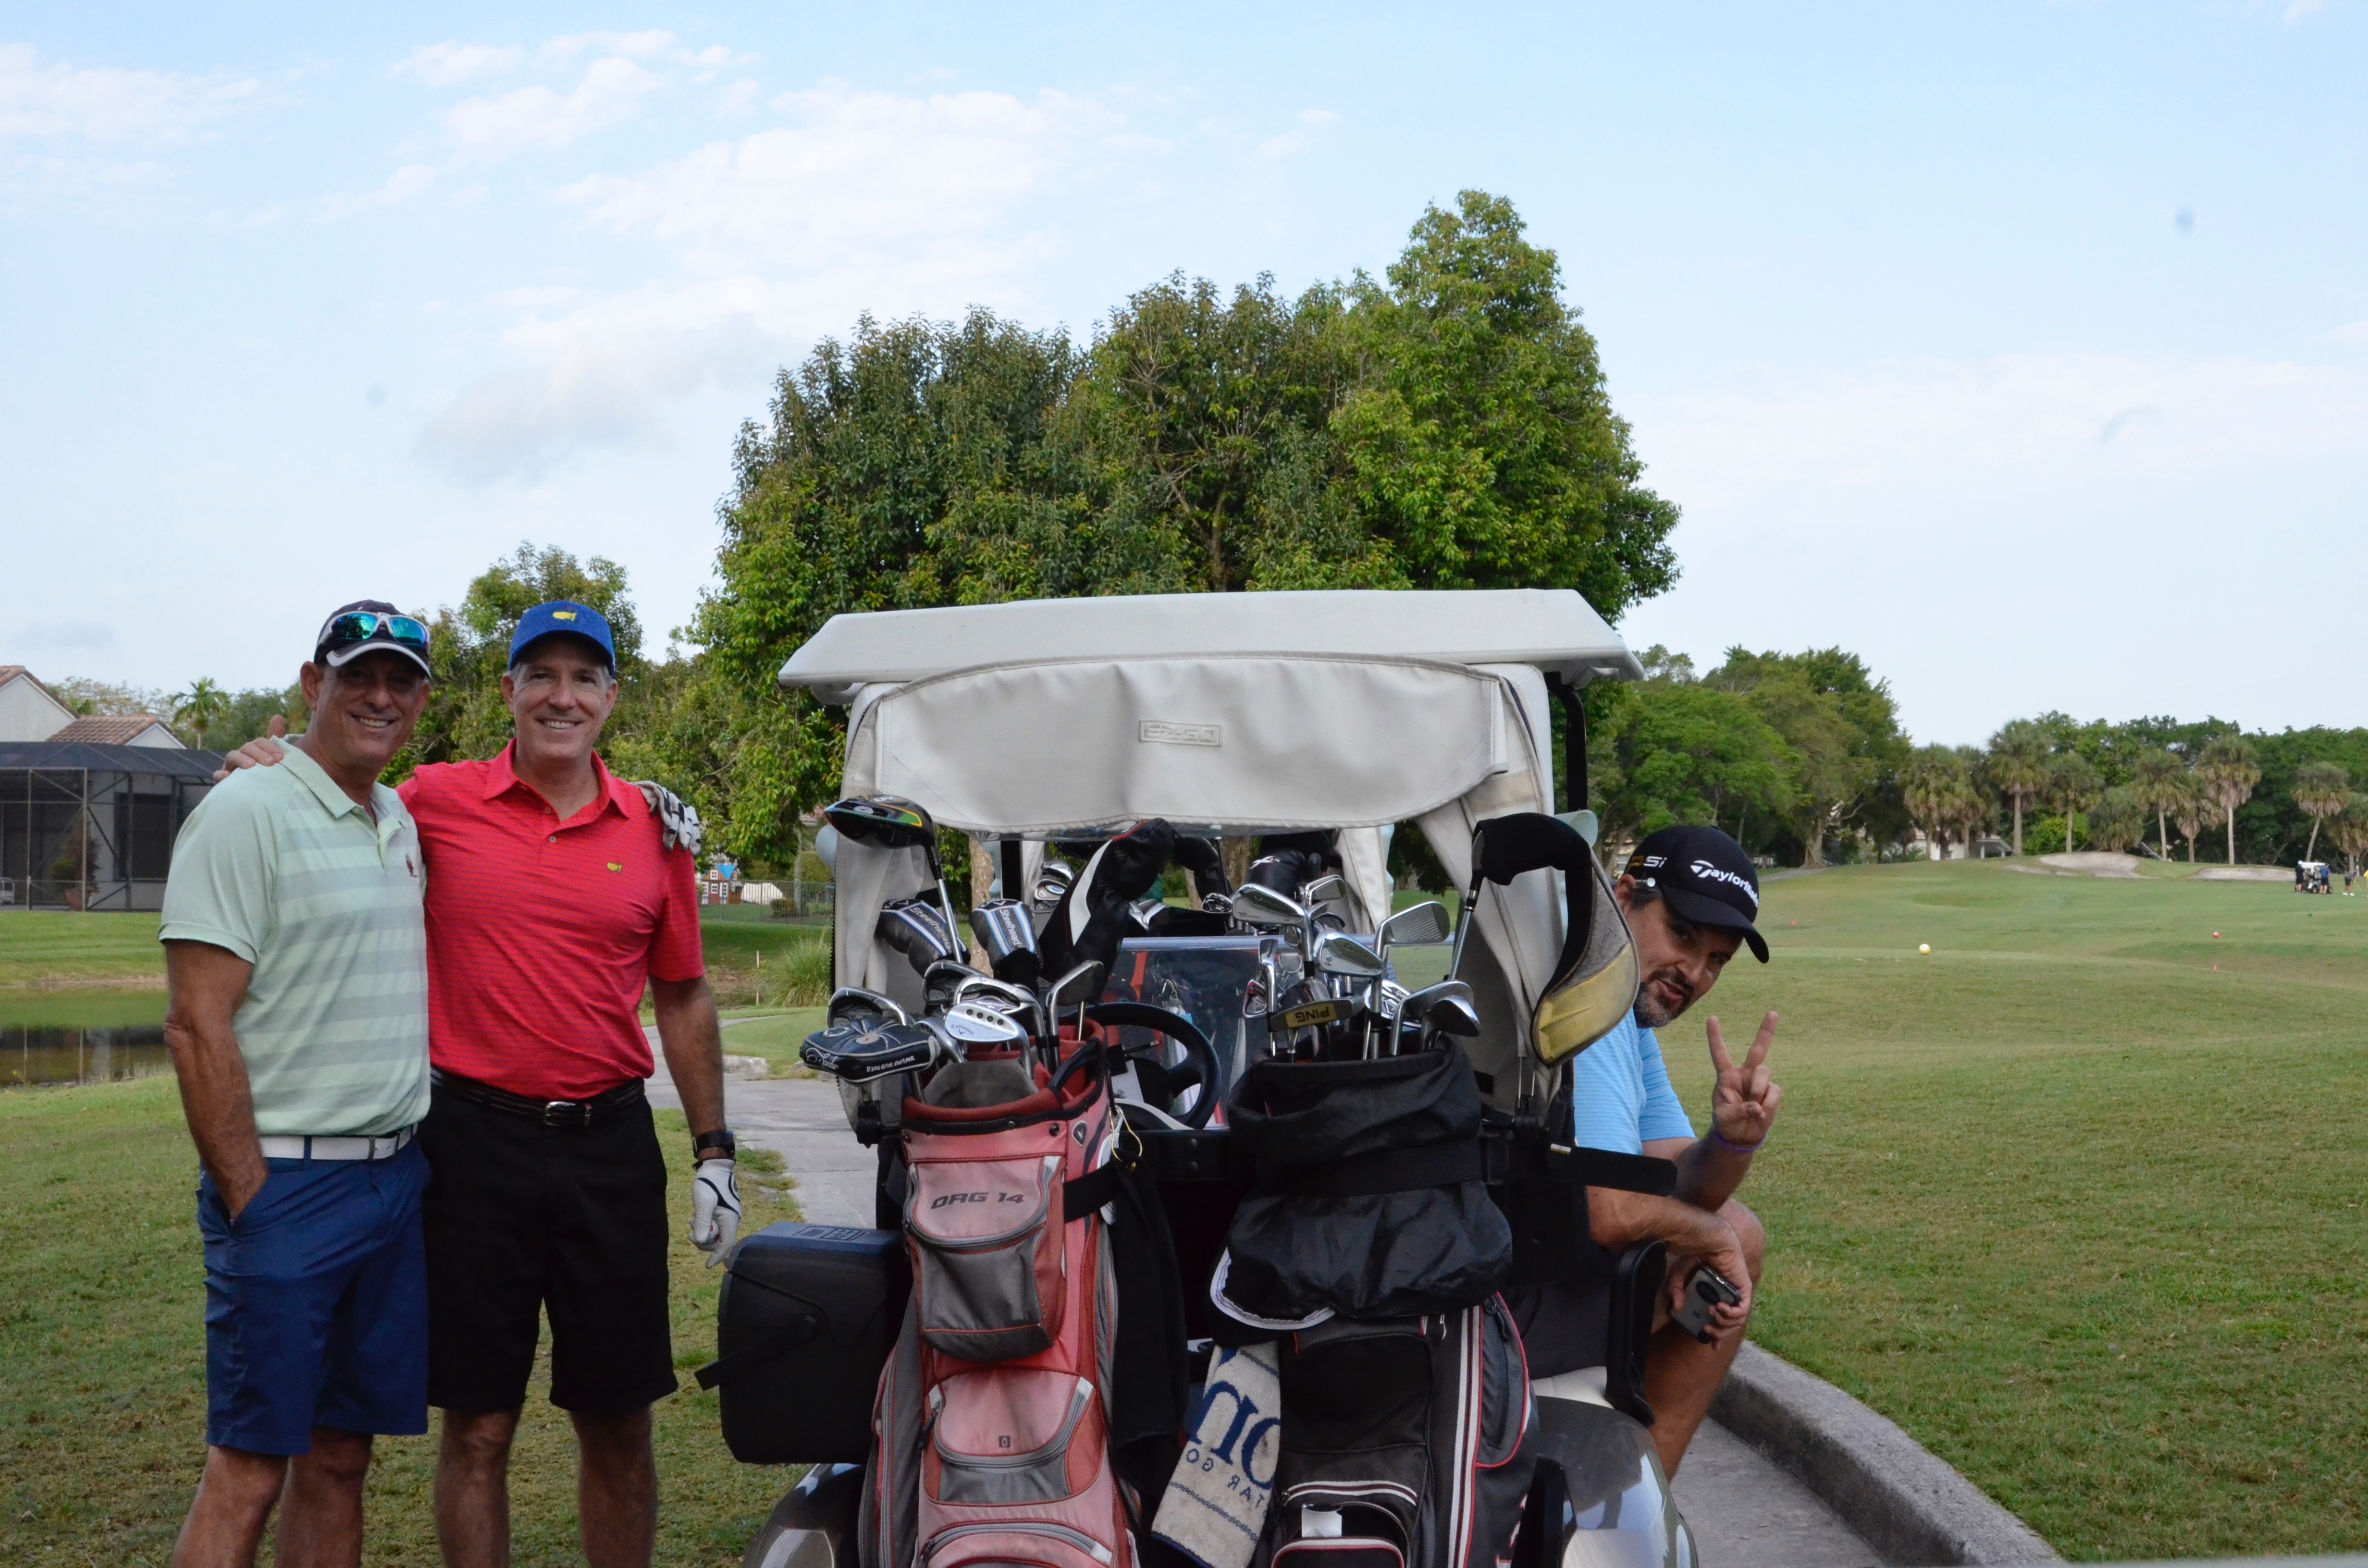 33rd Annual Rotary Golf Classic Sponsored by FHVLEGAL.COM gallery image #20